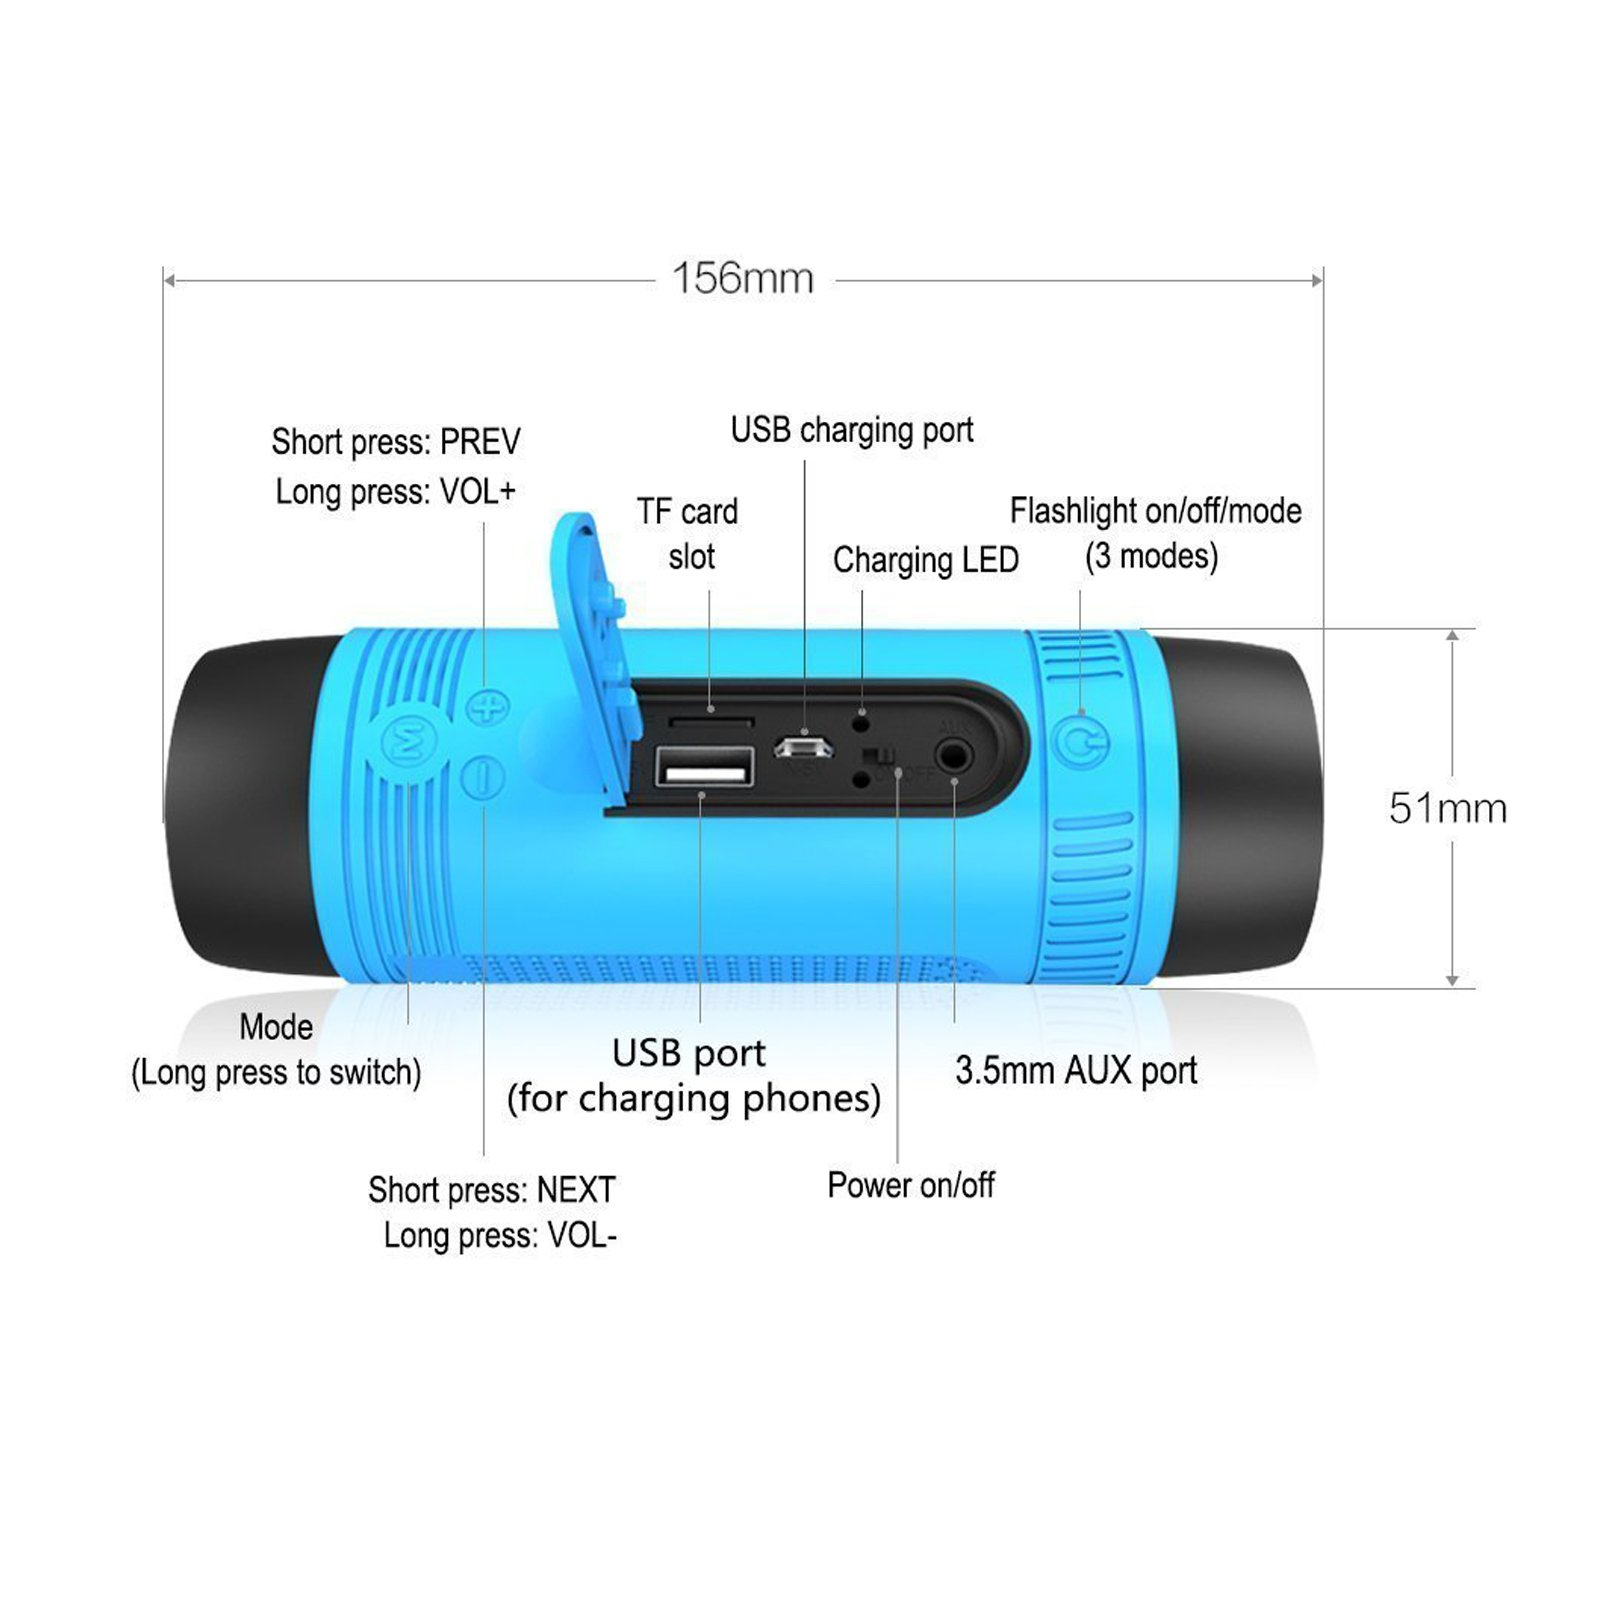 Portable Multifuctional Wireless Bluetooth Speaker 4000mAh Rechargeable Power Bank 3 Mode Emergency Flashlight Handsfree Answering Phone Call TF Card Music Player Mounting Mracket Screw Hole (Blue) by Teastar (Image #9)